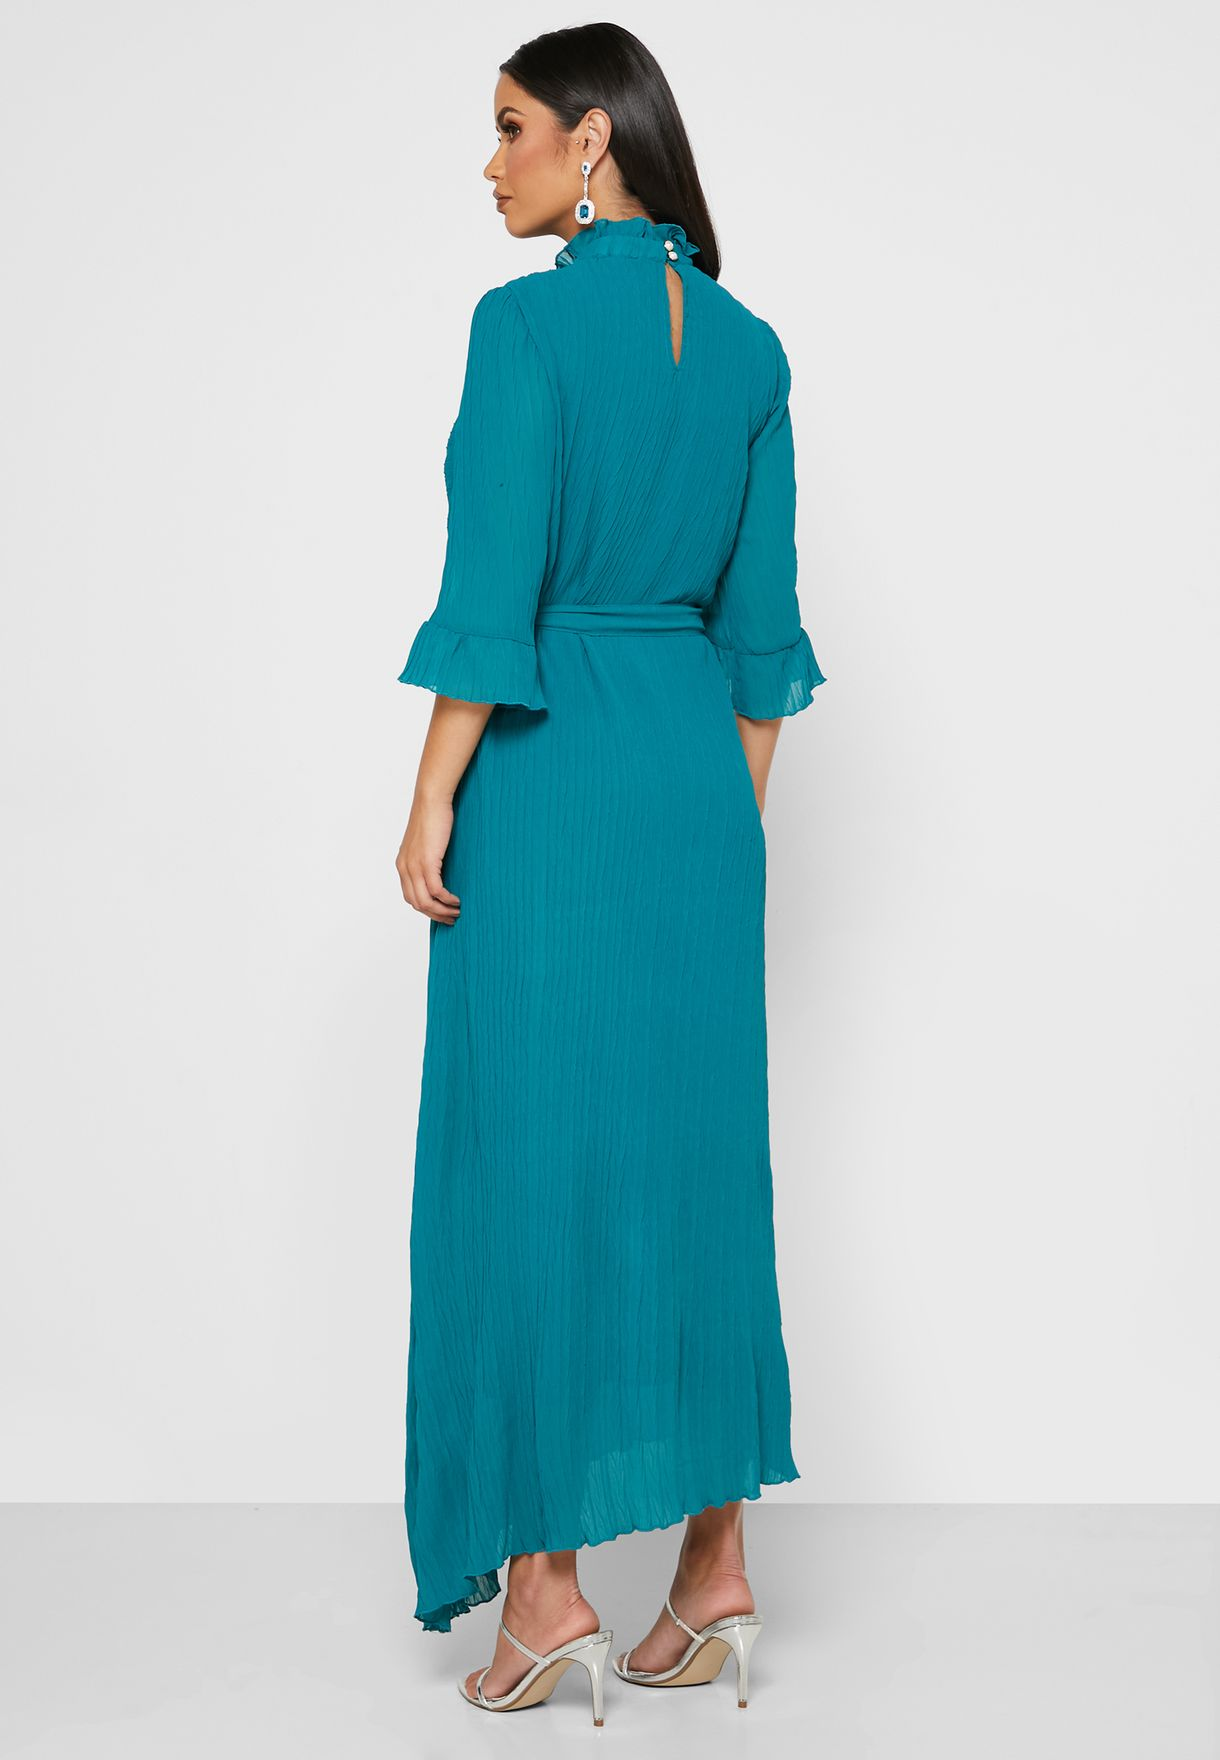 Ruffle Detail Self Tie Maxi Dress